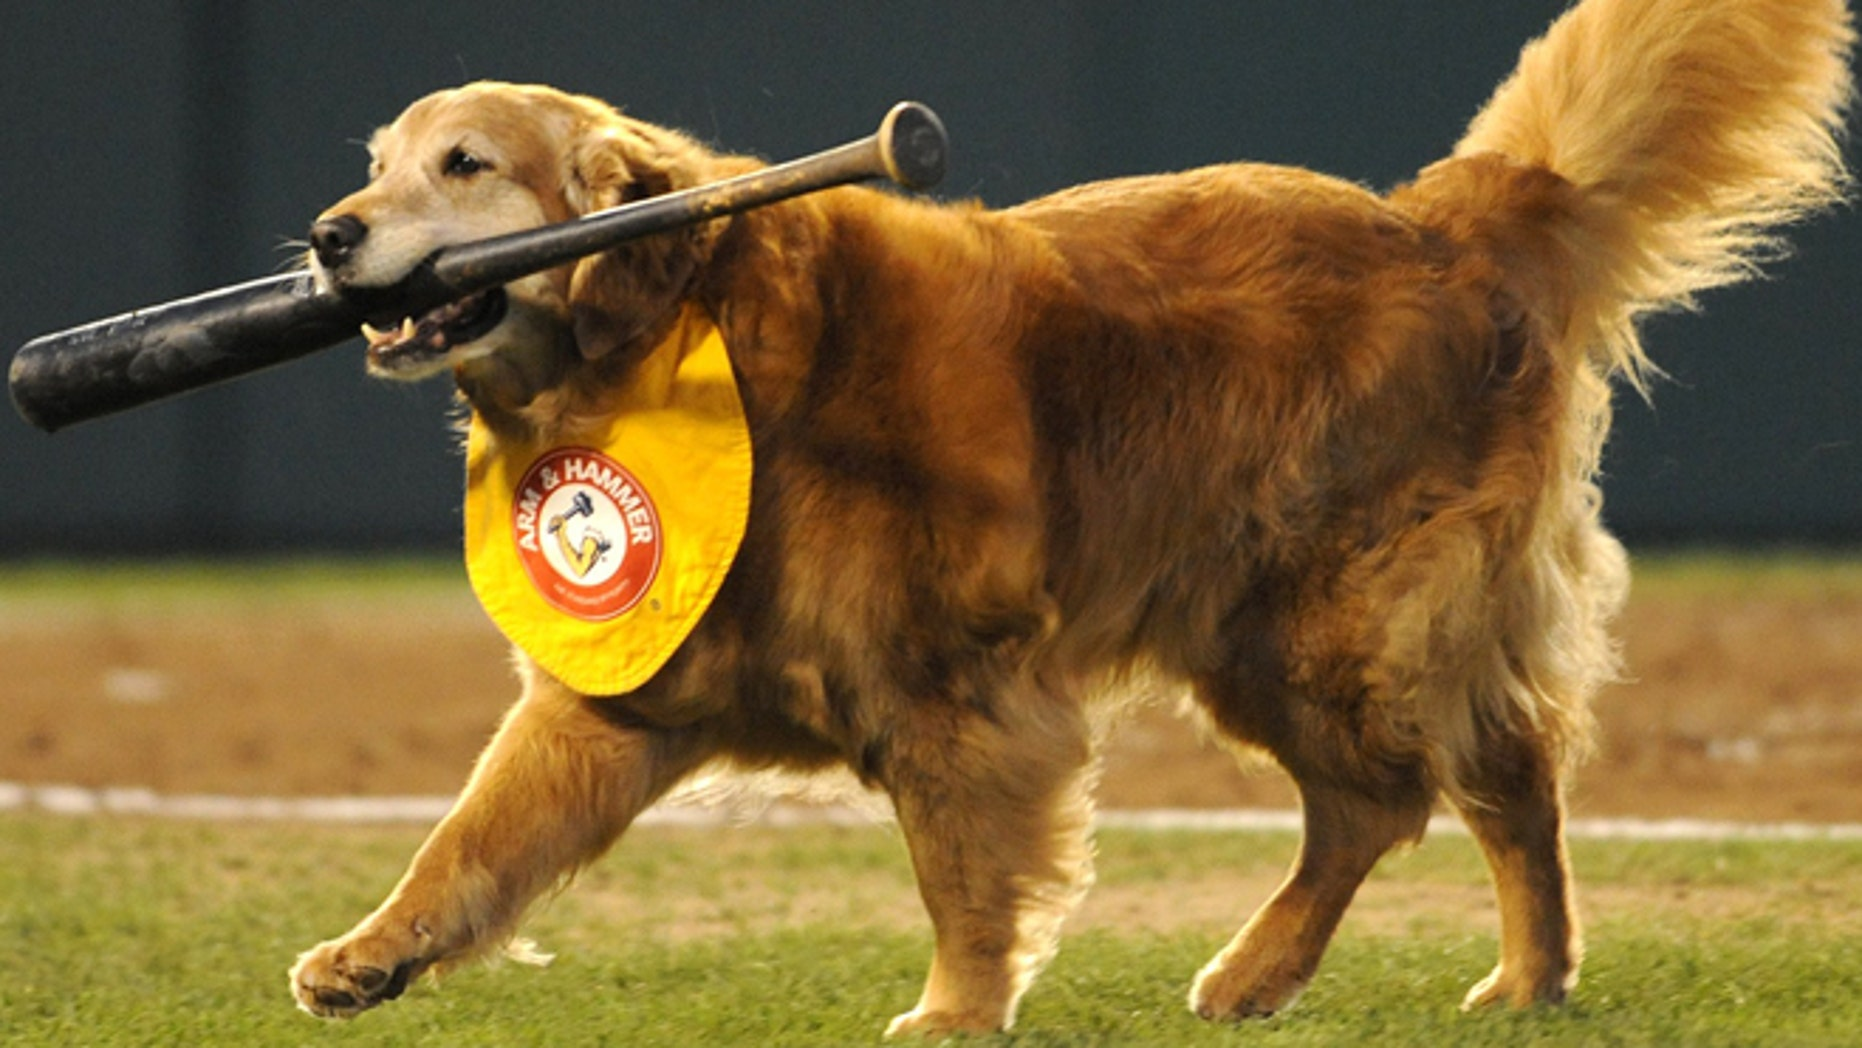 Chase, seen last year, walks with a bat during a Trenton Thunder baseball game.